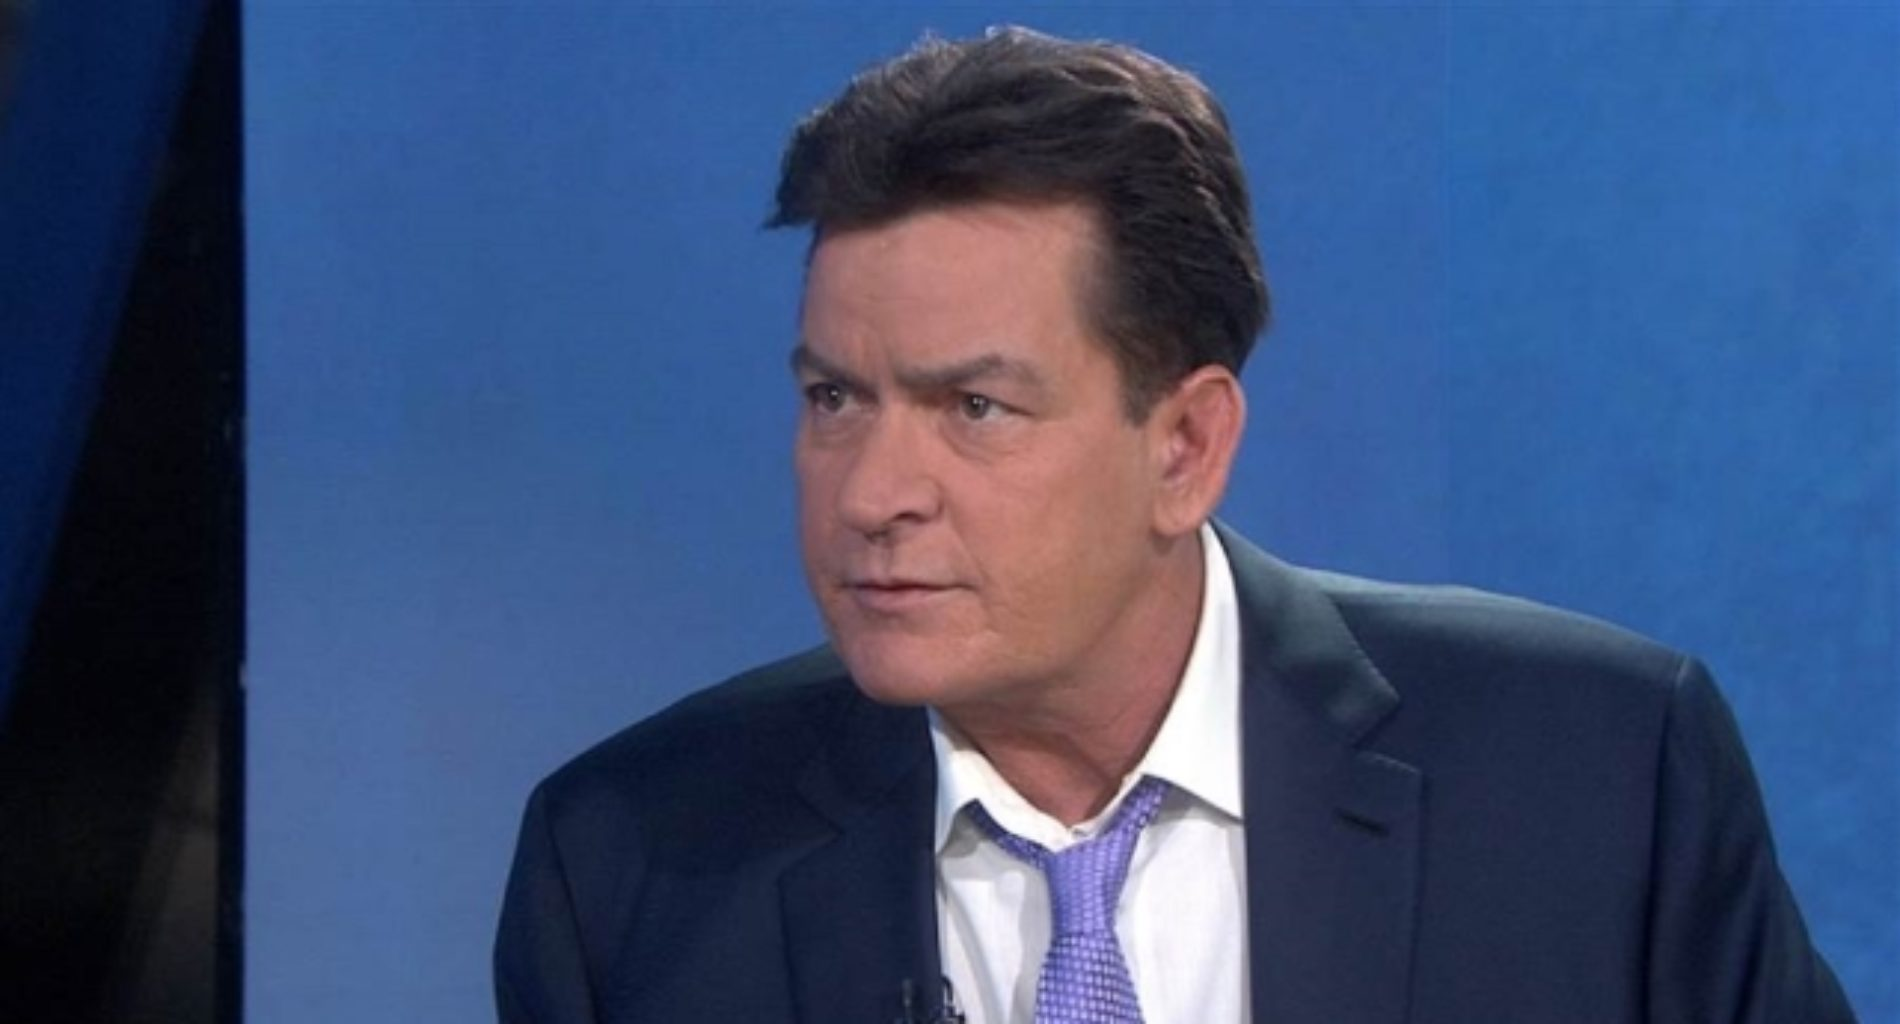 Charlie Sheen says there are other Hollywood stars who are HIV-positive but keeping it secret